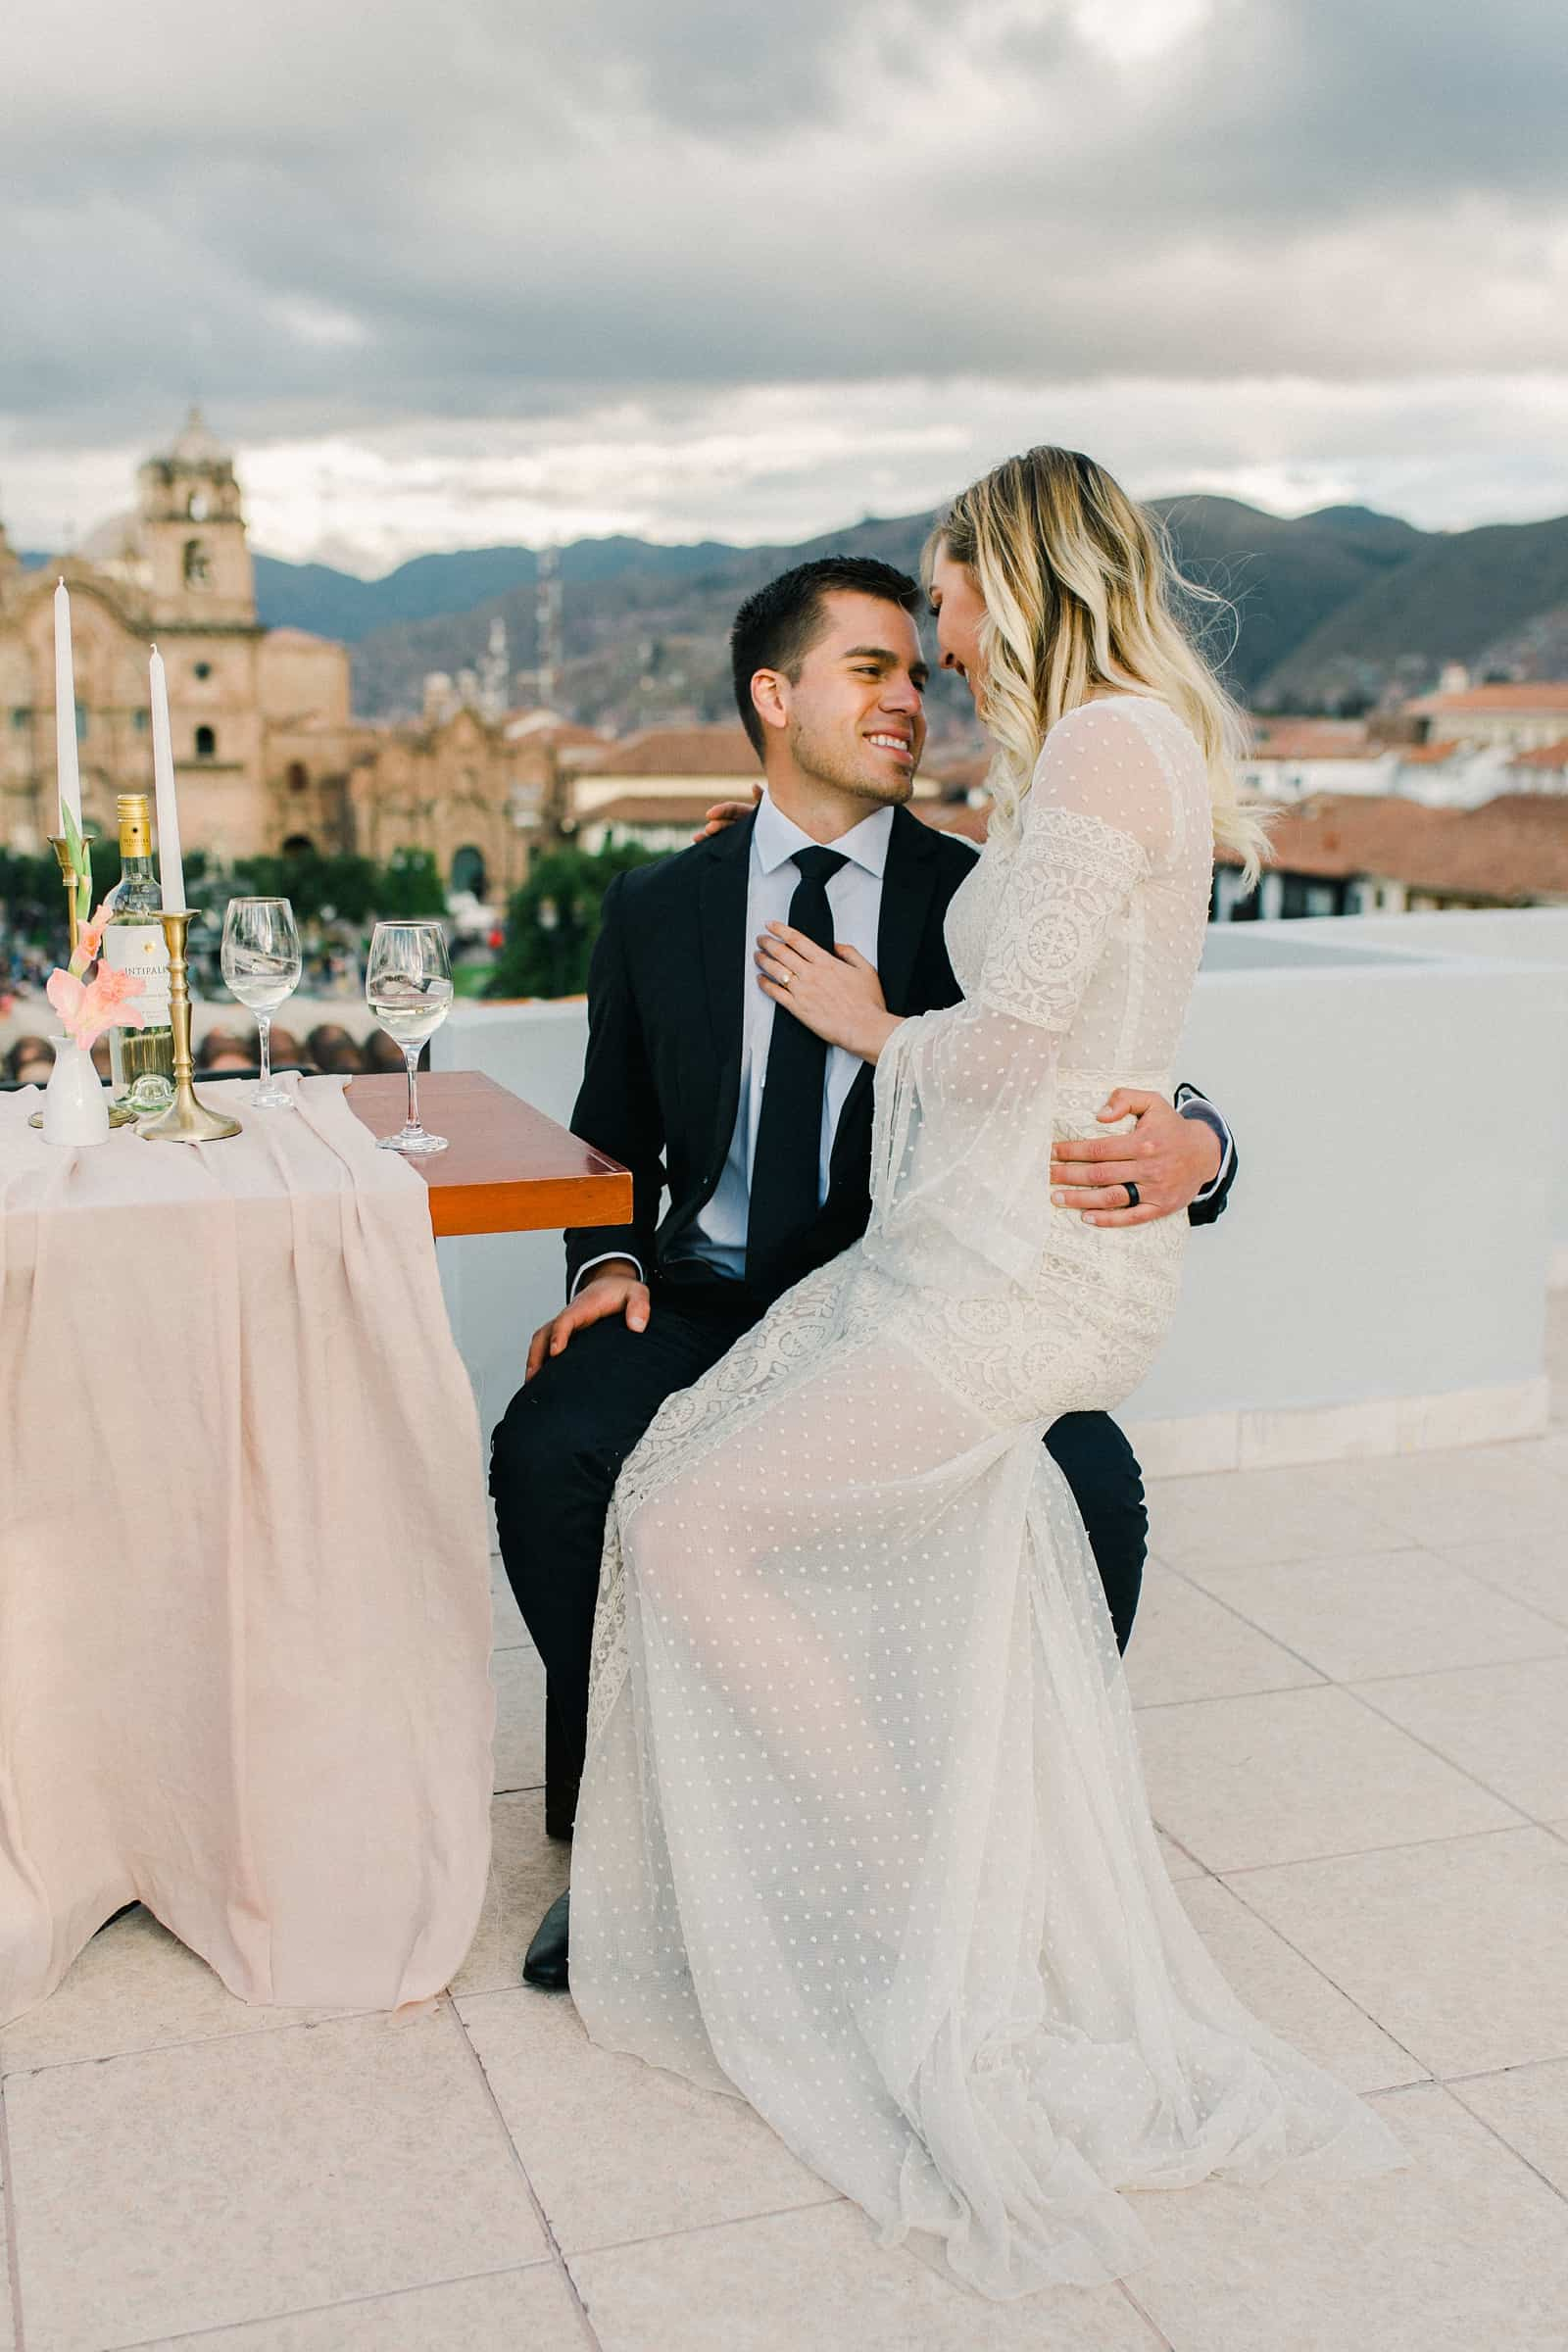 Cusco Peru Destination Wedding Inspiration, travel photography, bride and groom wedding dinner overlooking Cusco Cathedral